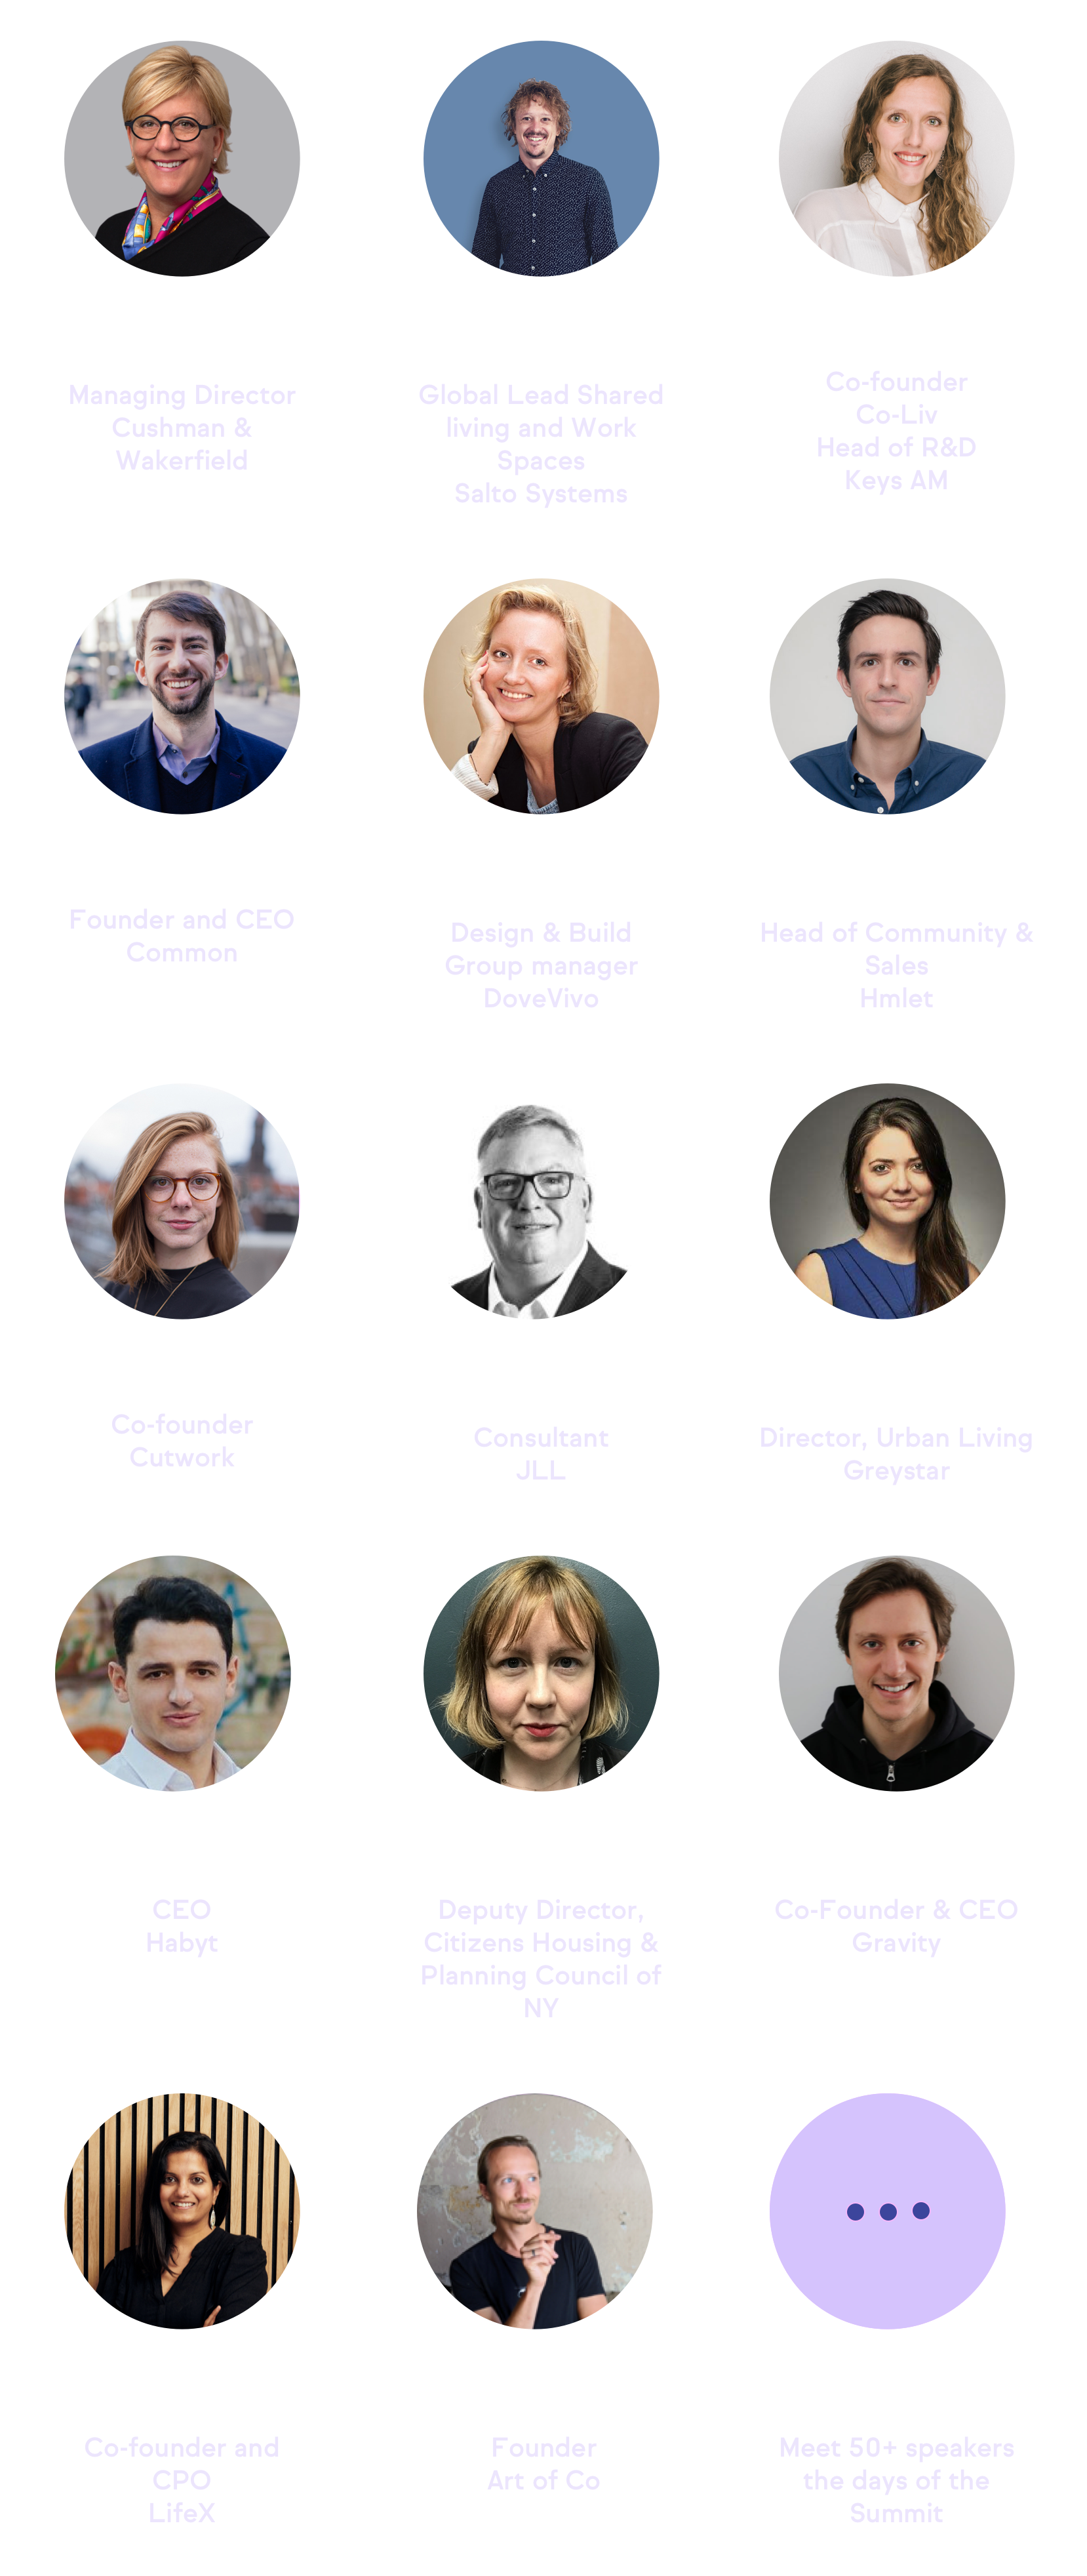 Speakers of the 2021 Co-Liv Summit